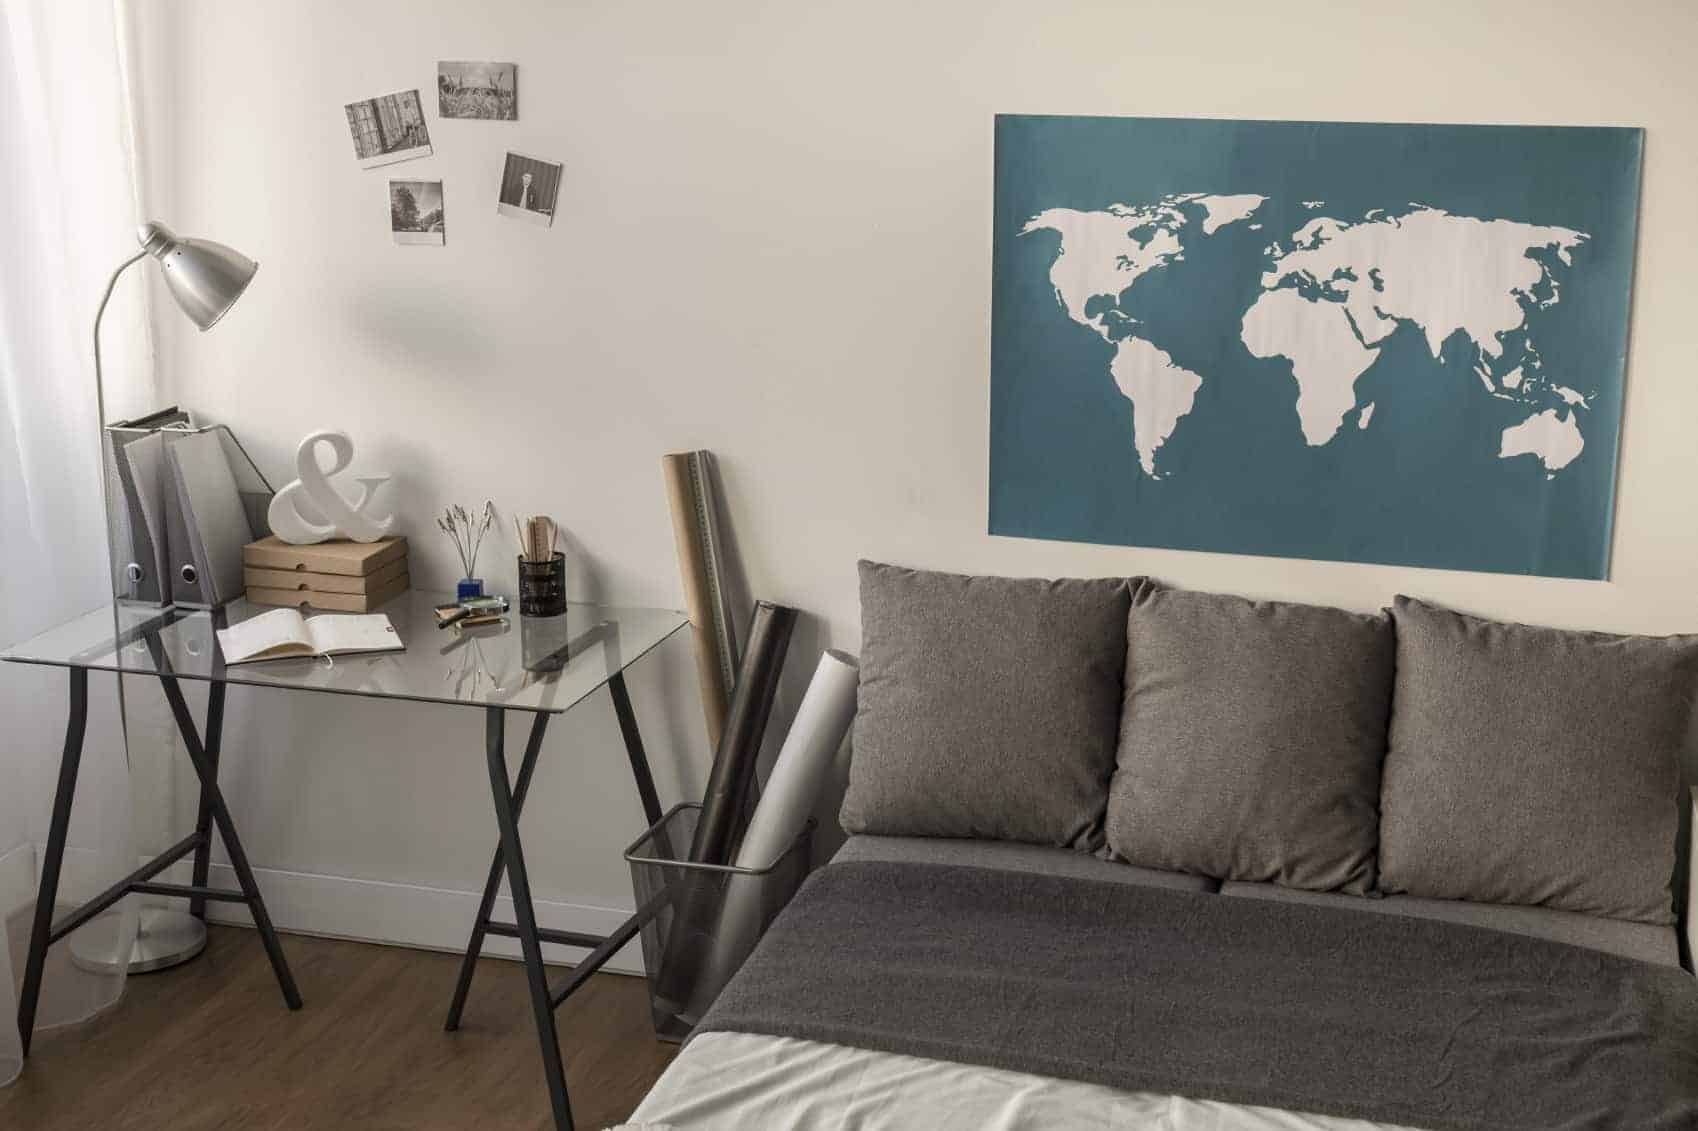 5 Awesome Apartment Decor Ideas for Travelers